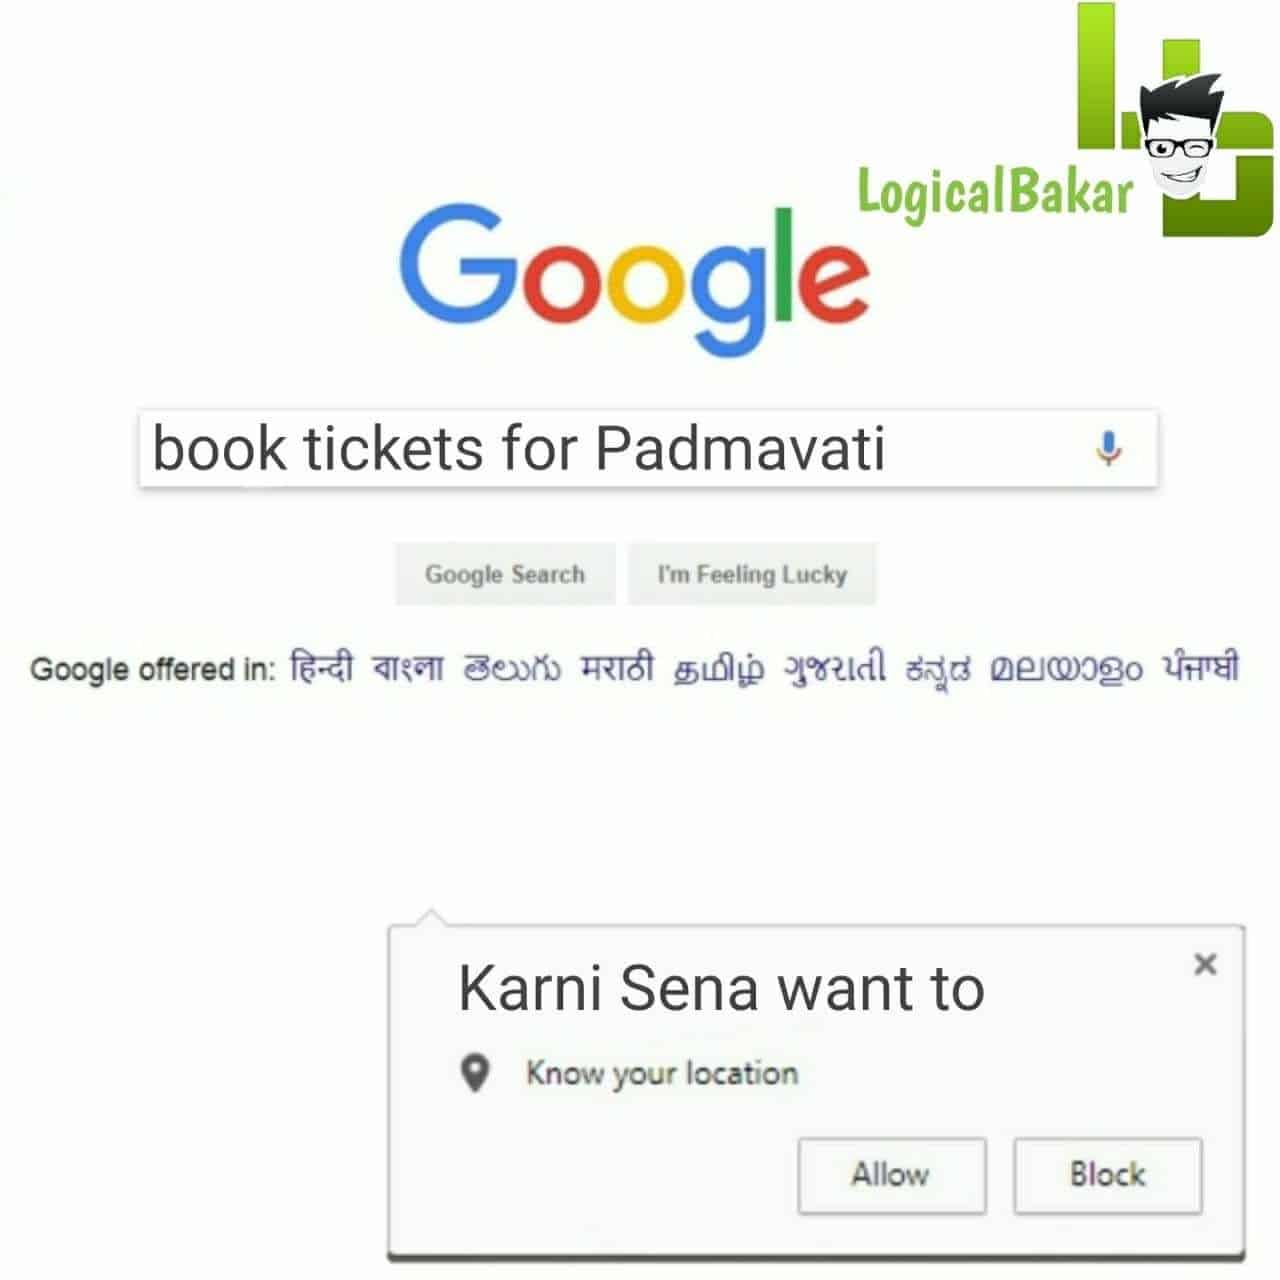 #padmavati #karnisena #lol